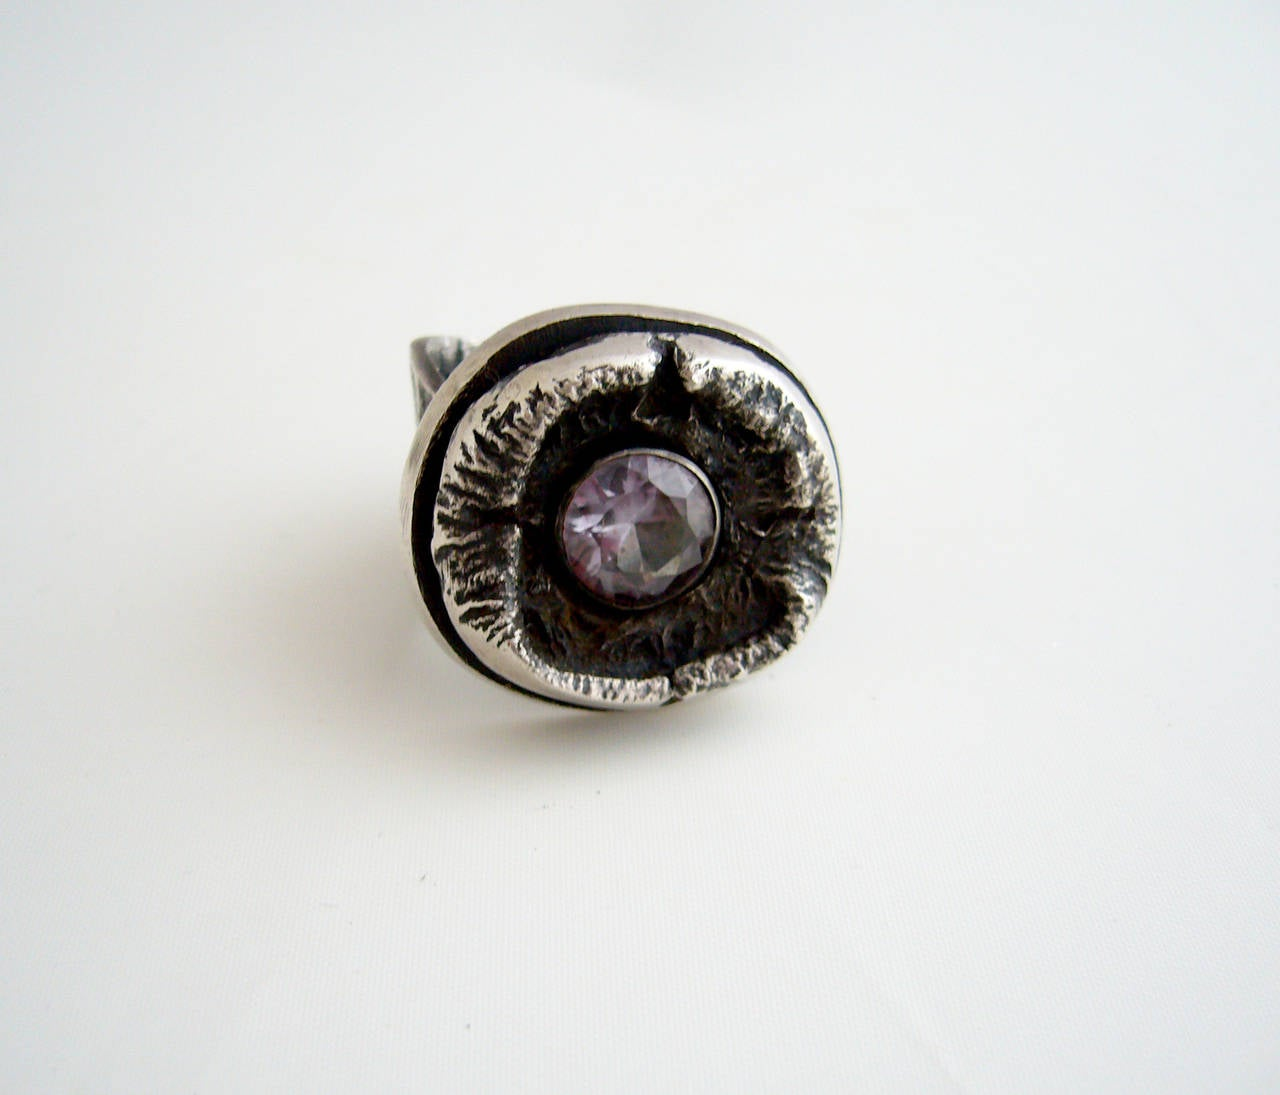 A sterling silver and a  amethyst ring created by James Parker of San Diego, California circa 1960's.  Faceted amethyst is nestled within a brutalist cave-like setting.  Ring is a finger size 9 to 9.5.   A great, unconventional alternate to a modern